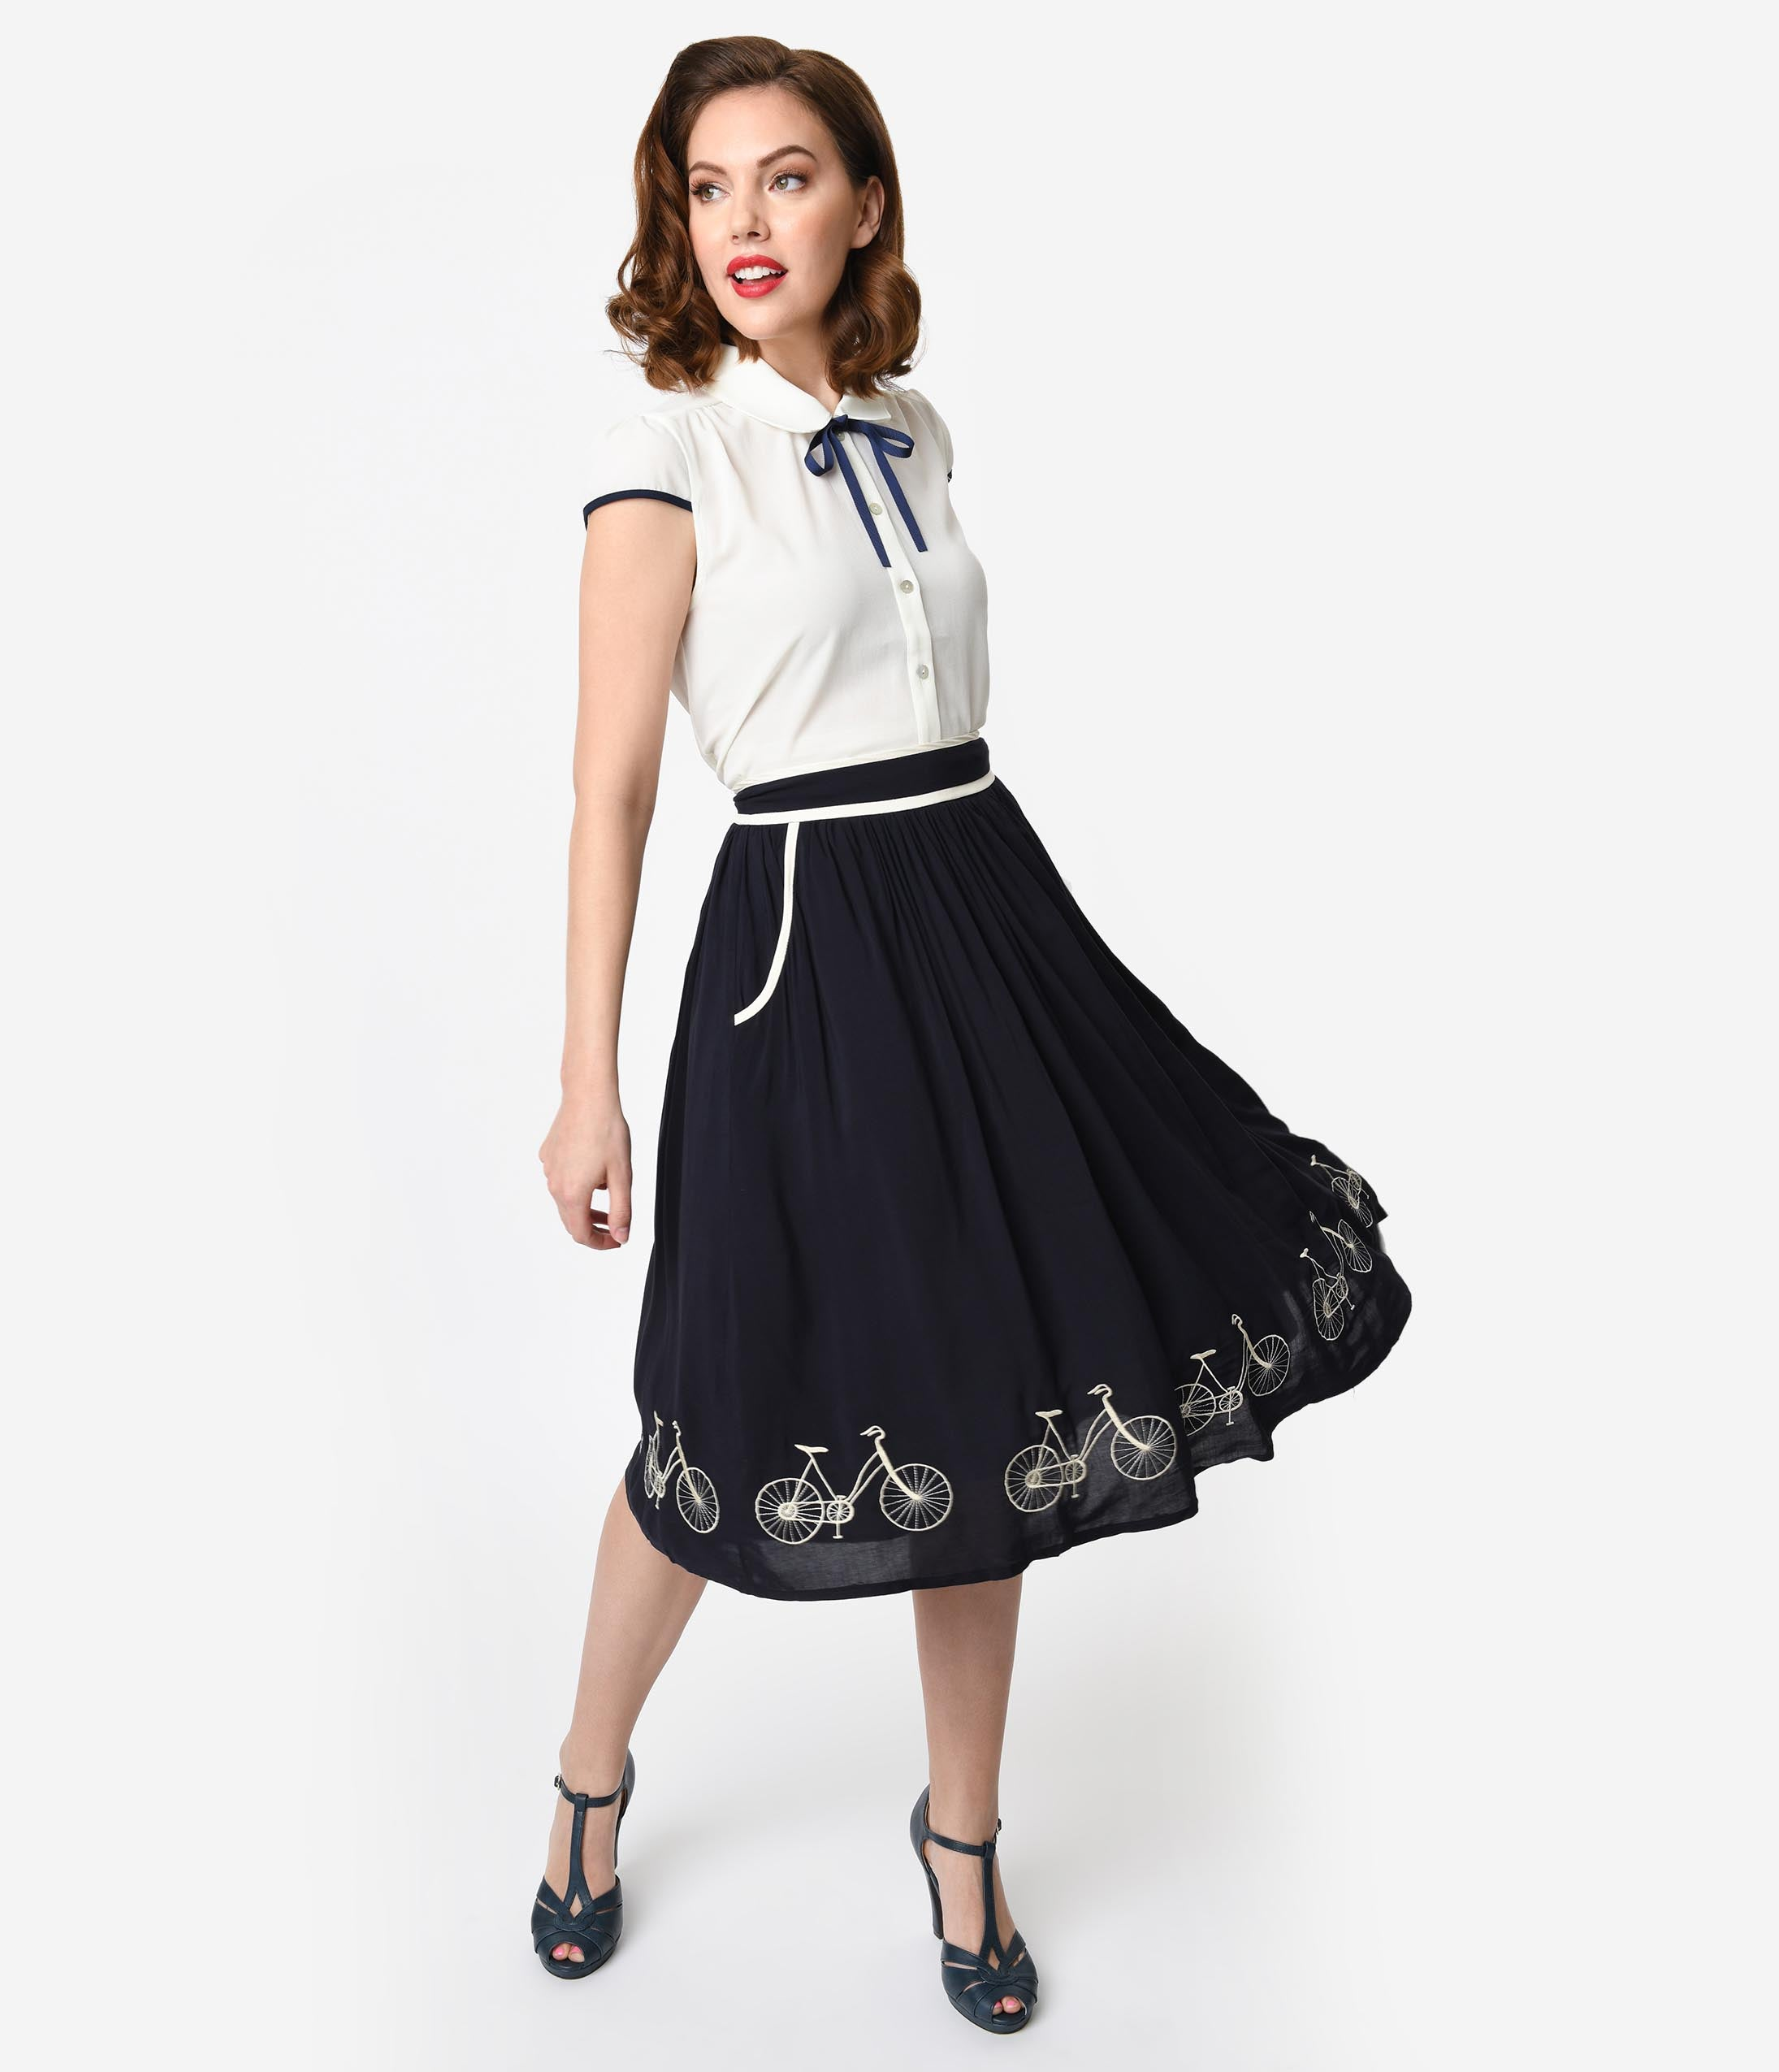 50s Costumes | 50s Halloween Costumes 1950S Style Navy Blue  Ivory Embroidered Bicycle Border Swing Skirt $48.00 AT vintagedancer.com